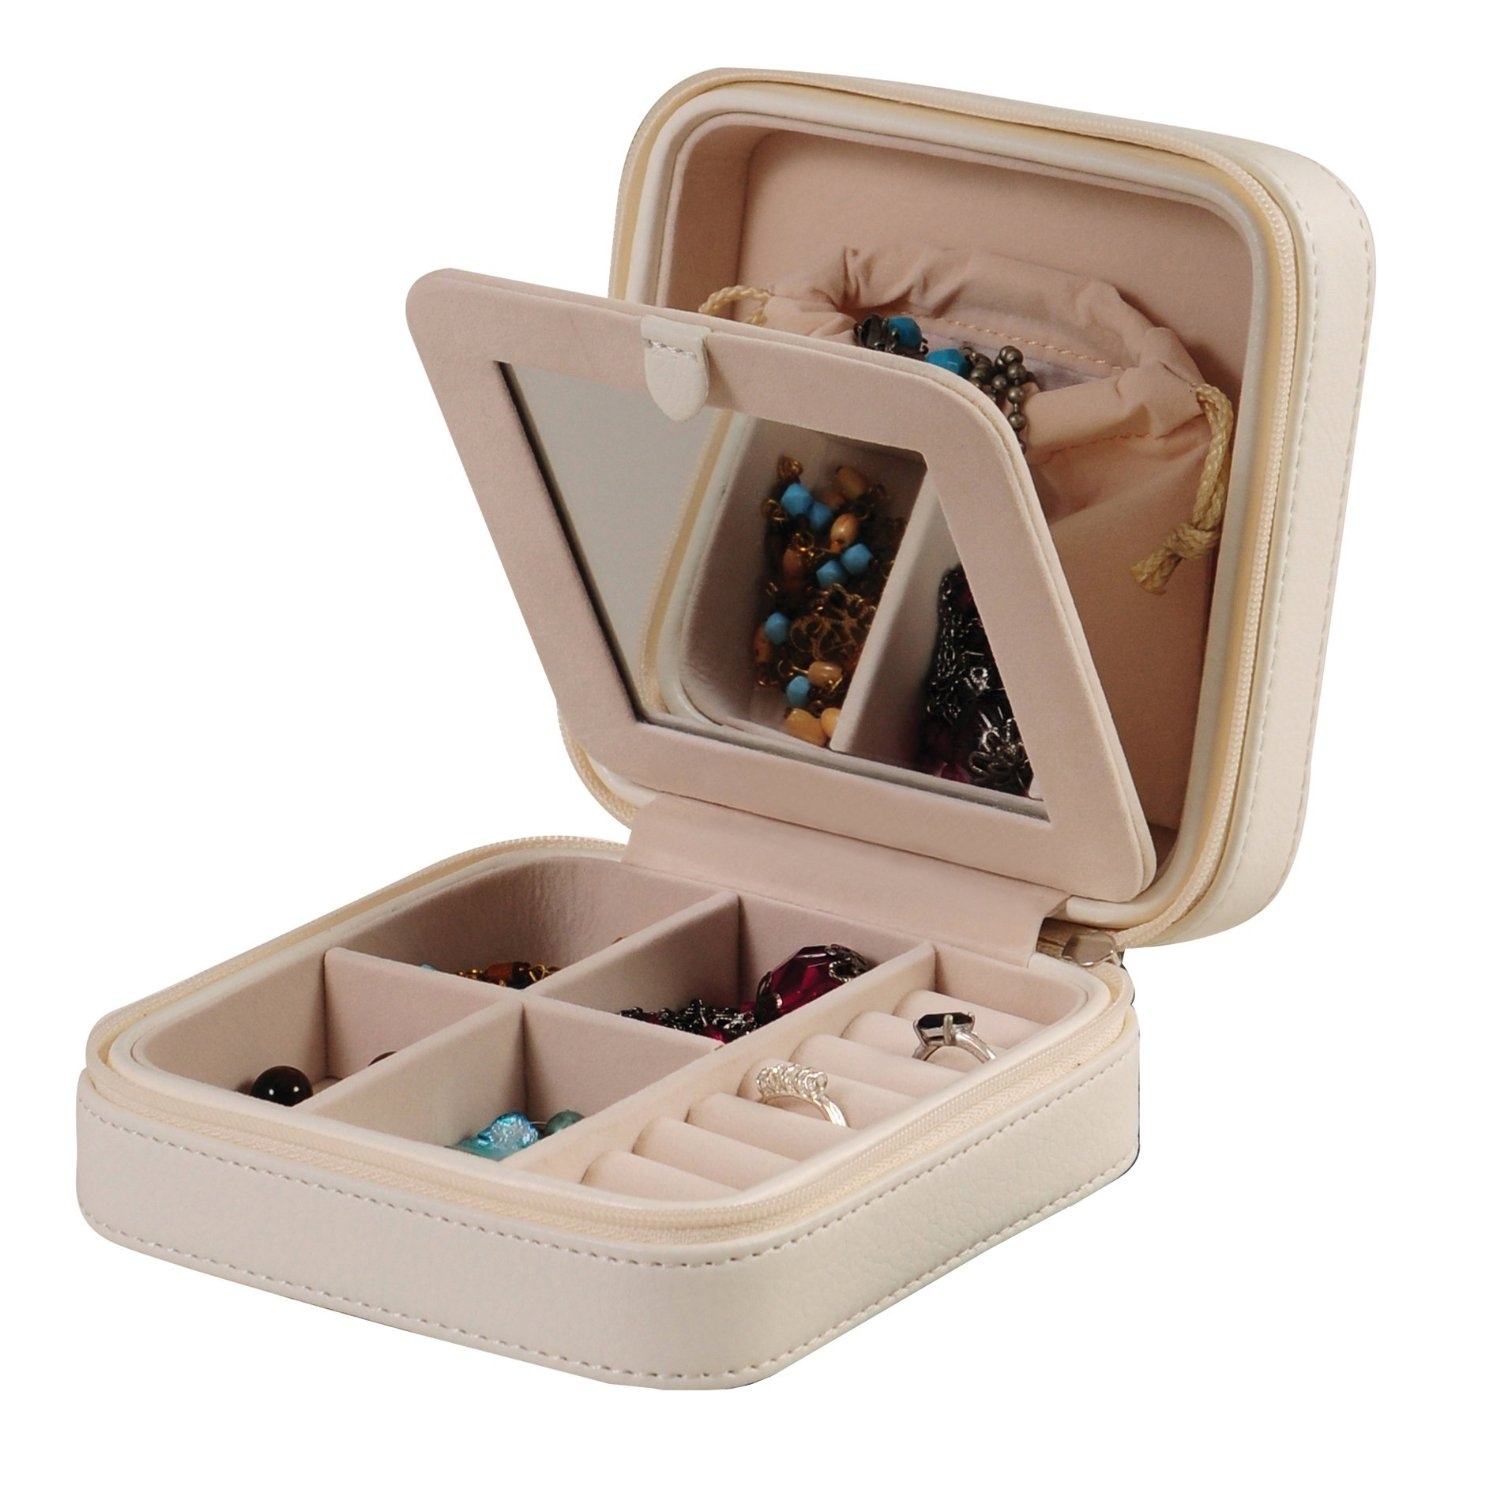 Small Travel Trailers Ultralight: Small Travel Jewelry Case